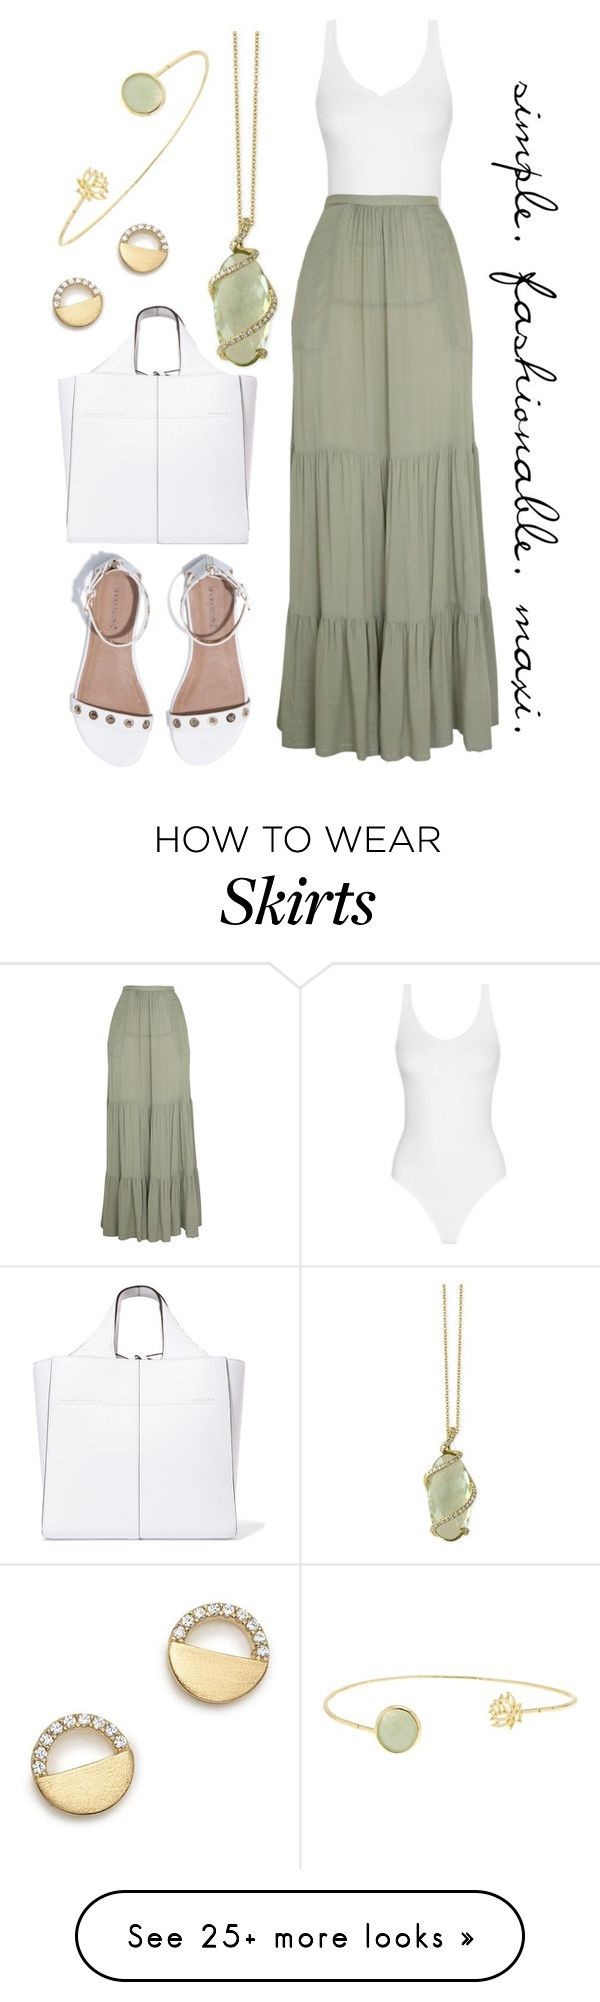 """""""OOTD: Olive Maxi Skirt"""" by ledawnat on Polyvore featuring Effy Jewelry, Victoria Beckham, Luella, Bloomingdale's, Sapanyu, maxiskirt, longSkirt and contestentry"""